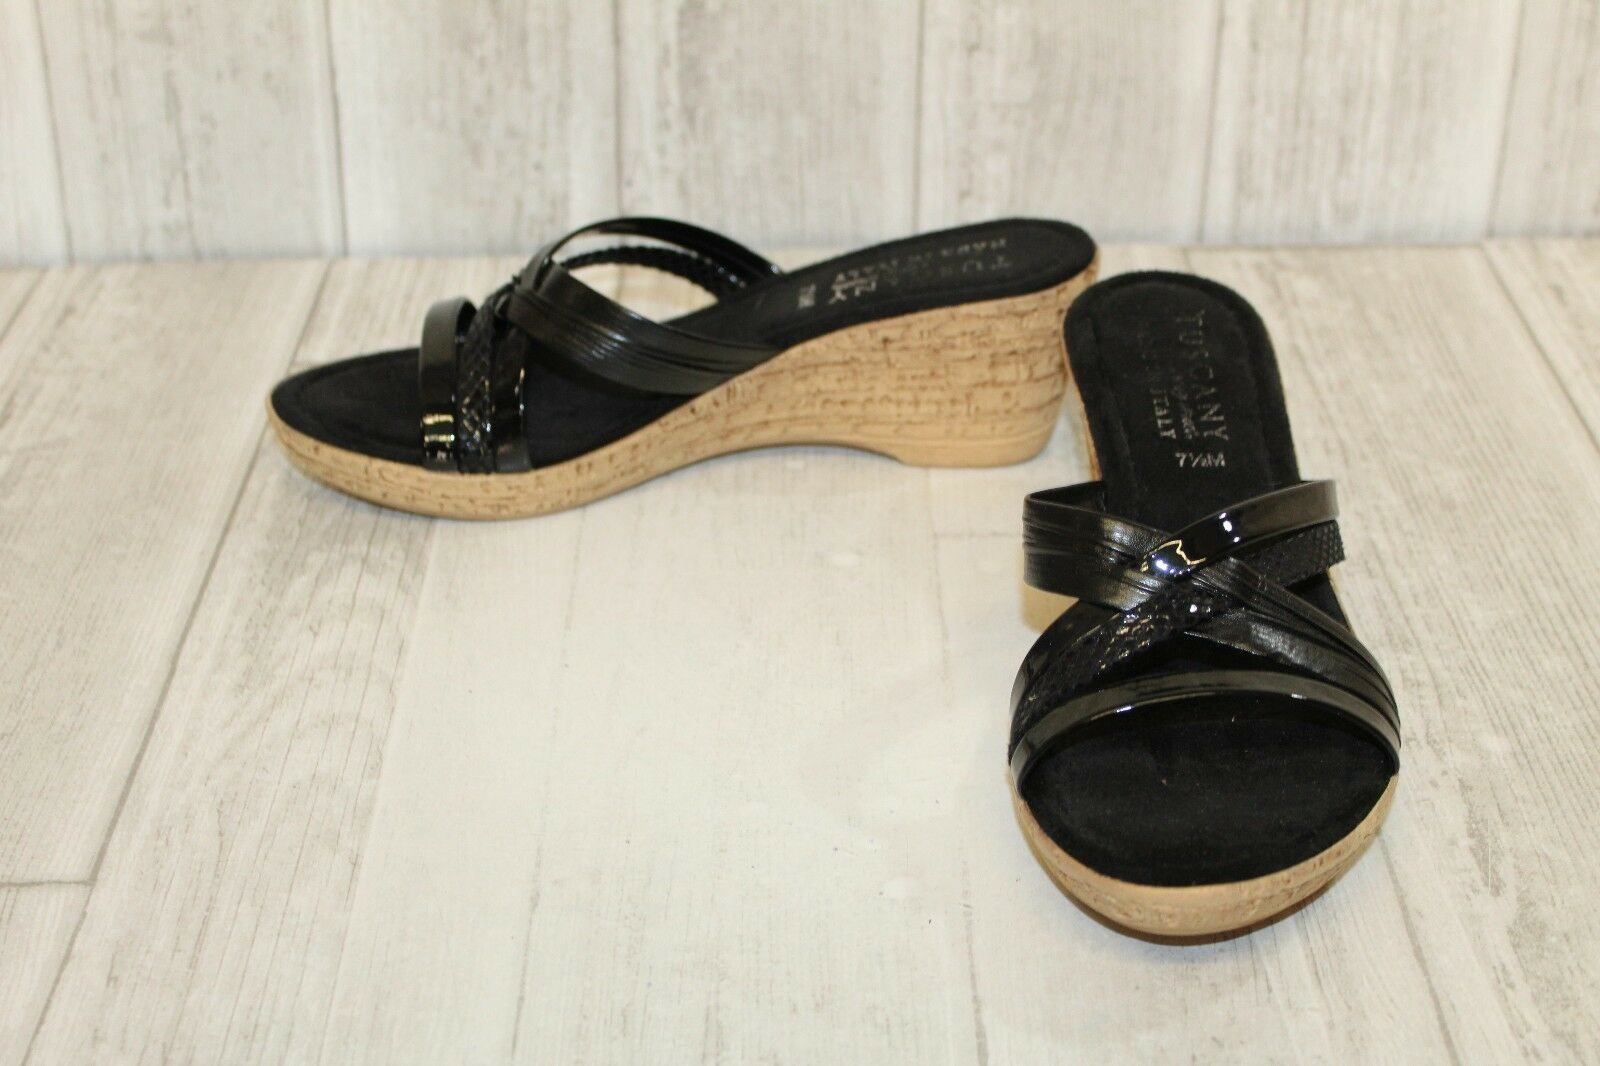 Easy Street Idro Size Wedge Sandals - Women's Size Idro 7.5 M - Black c7f4e5